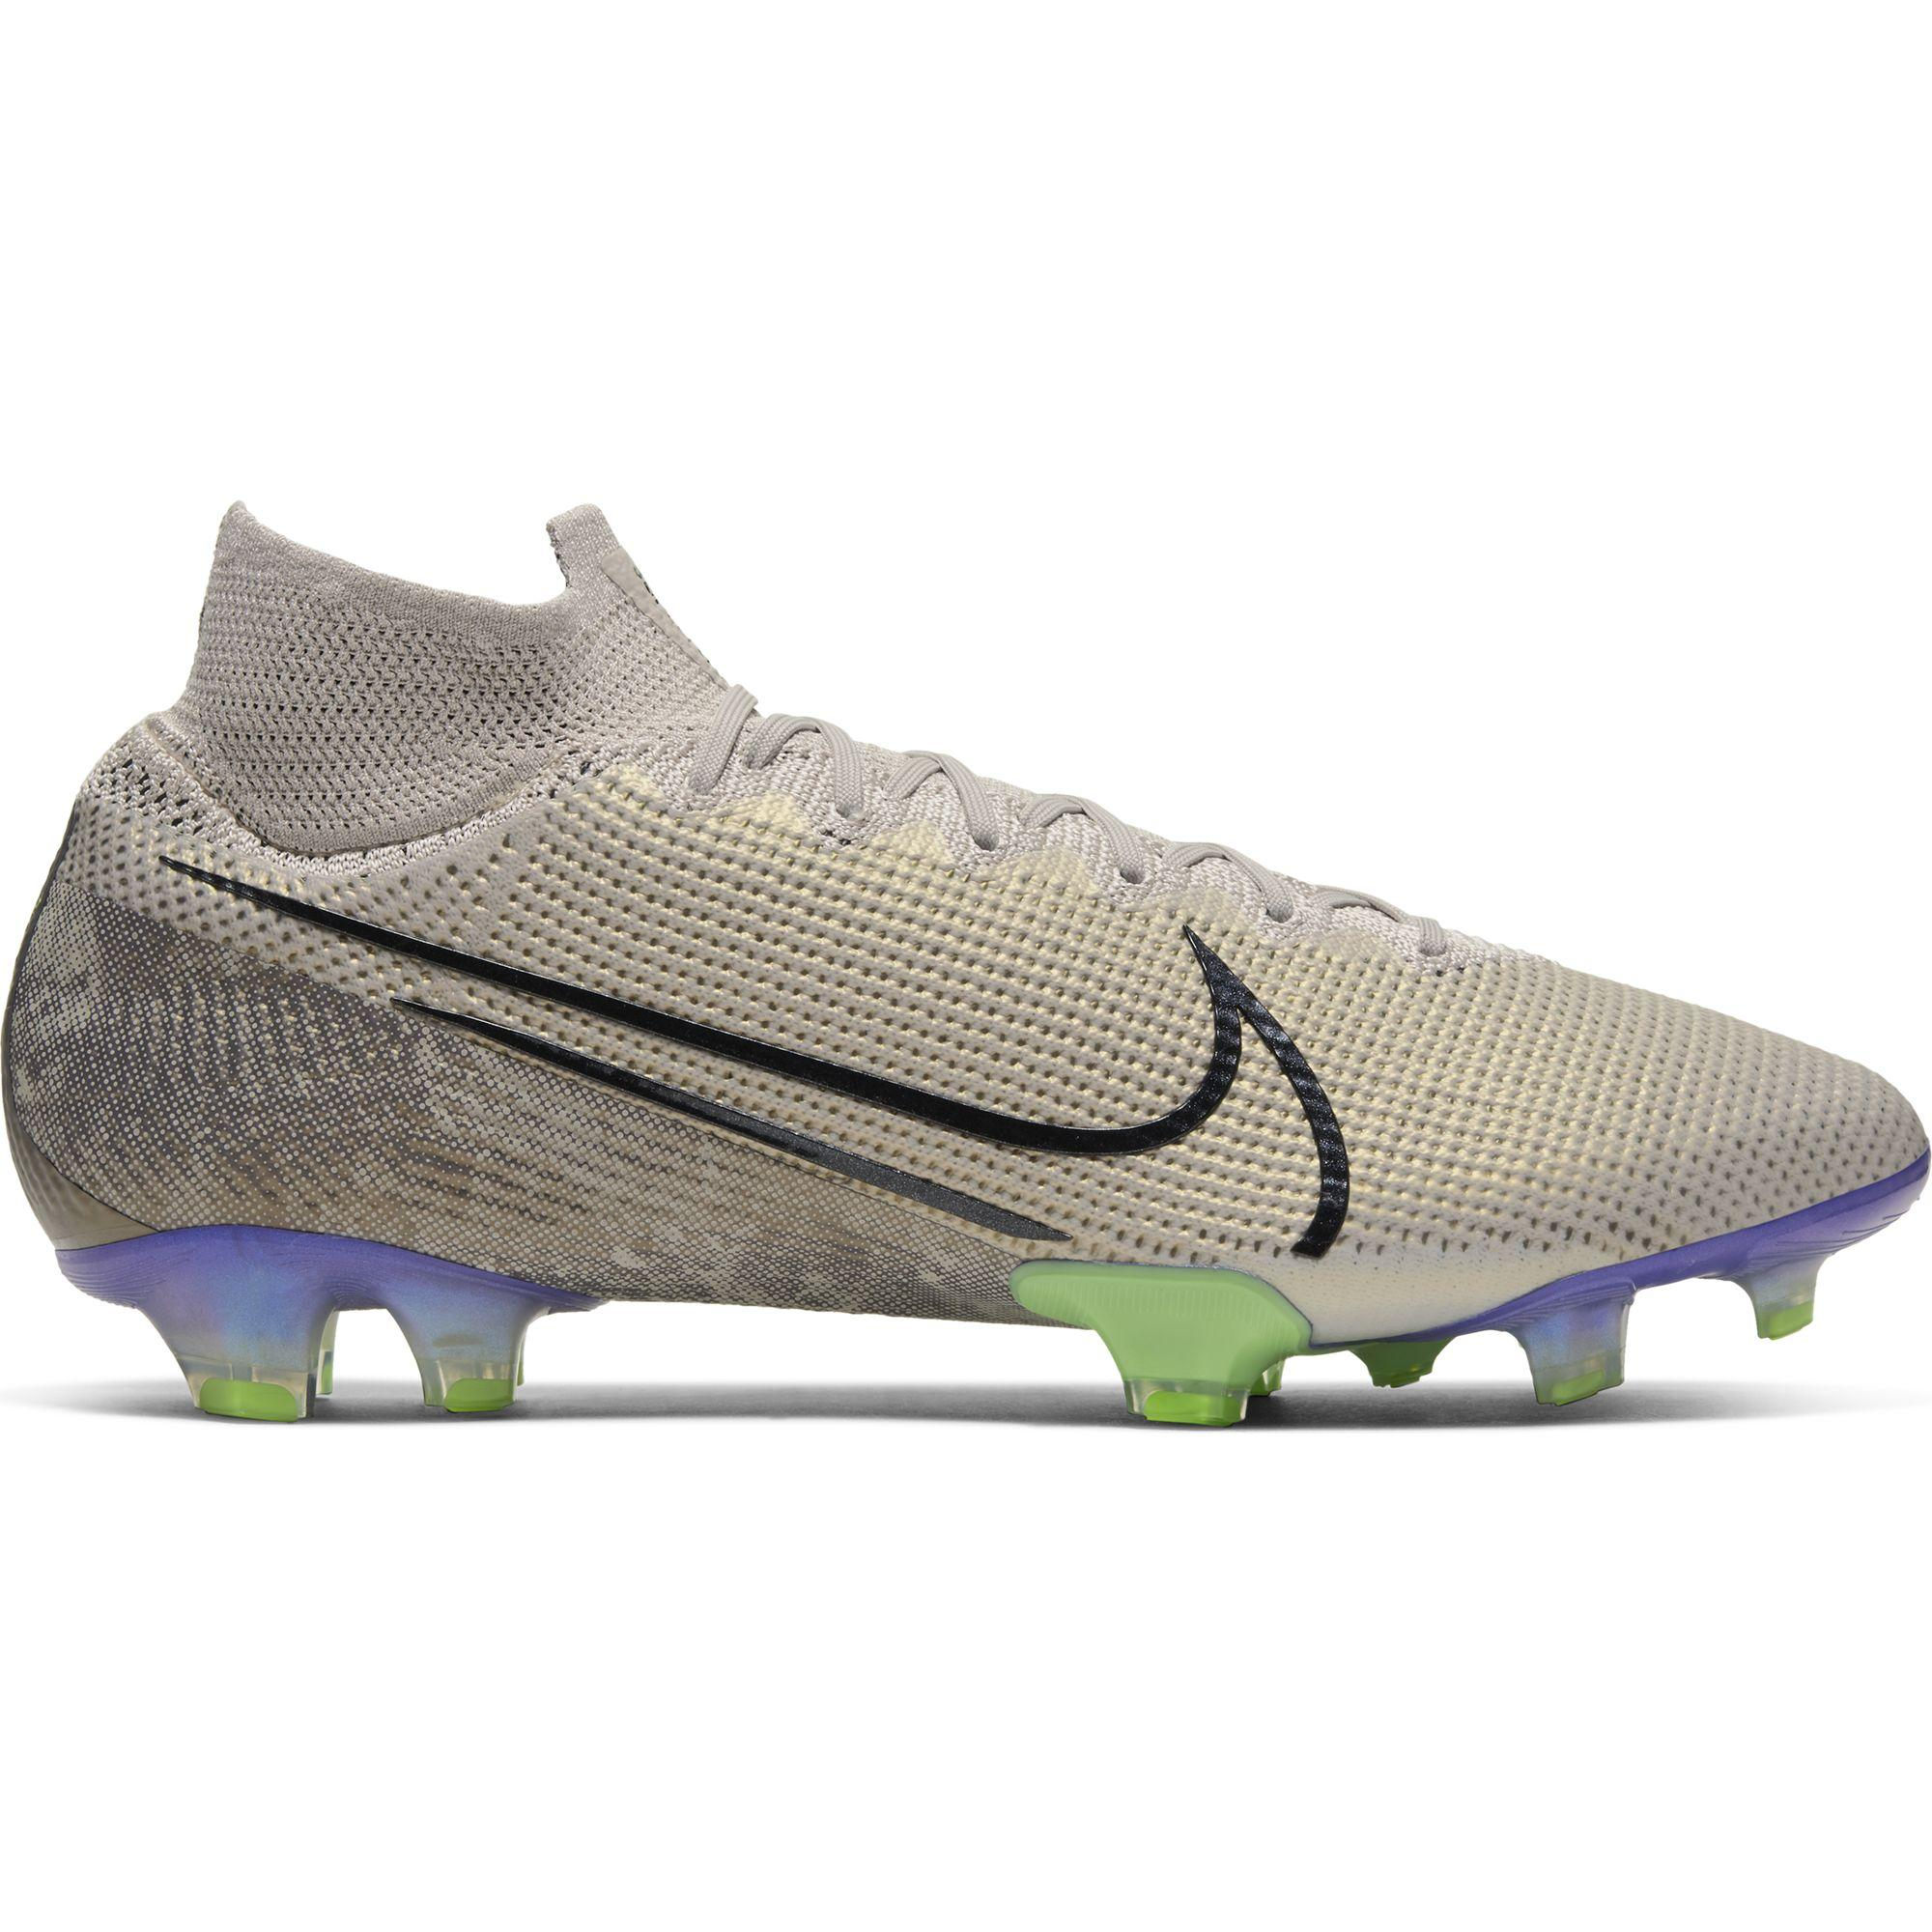 Nike Scarpe Calcio Mercurial Superfly 7 Elite Fg